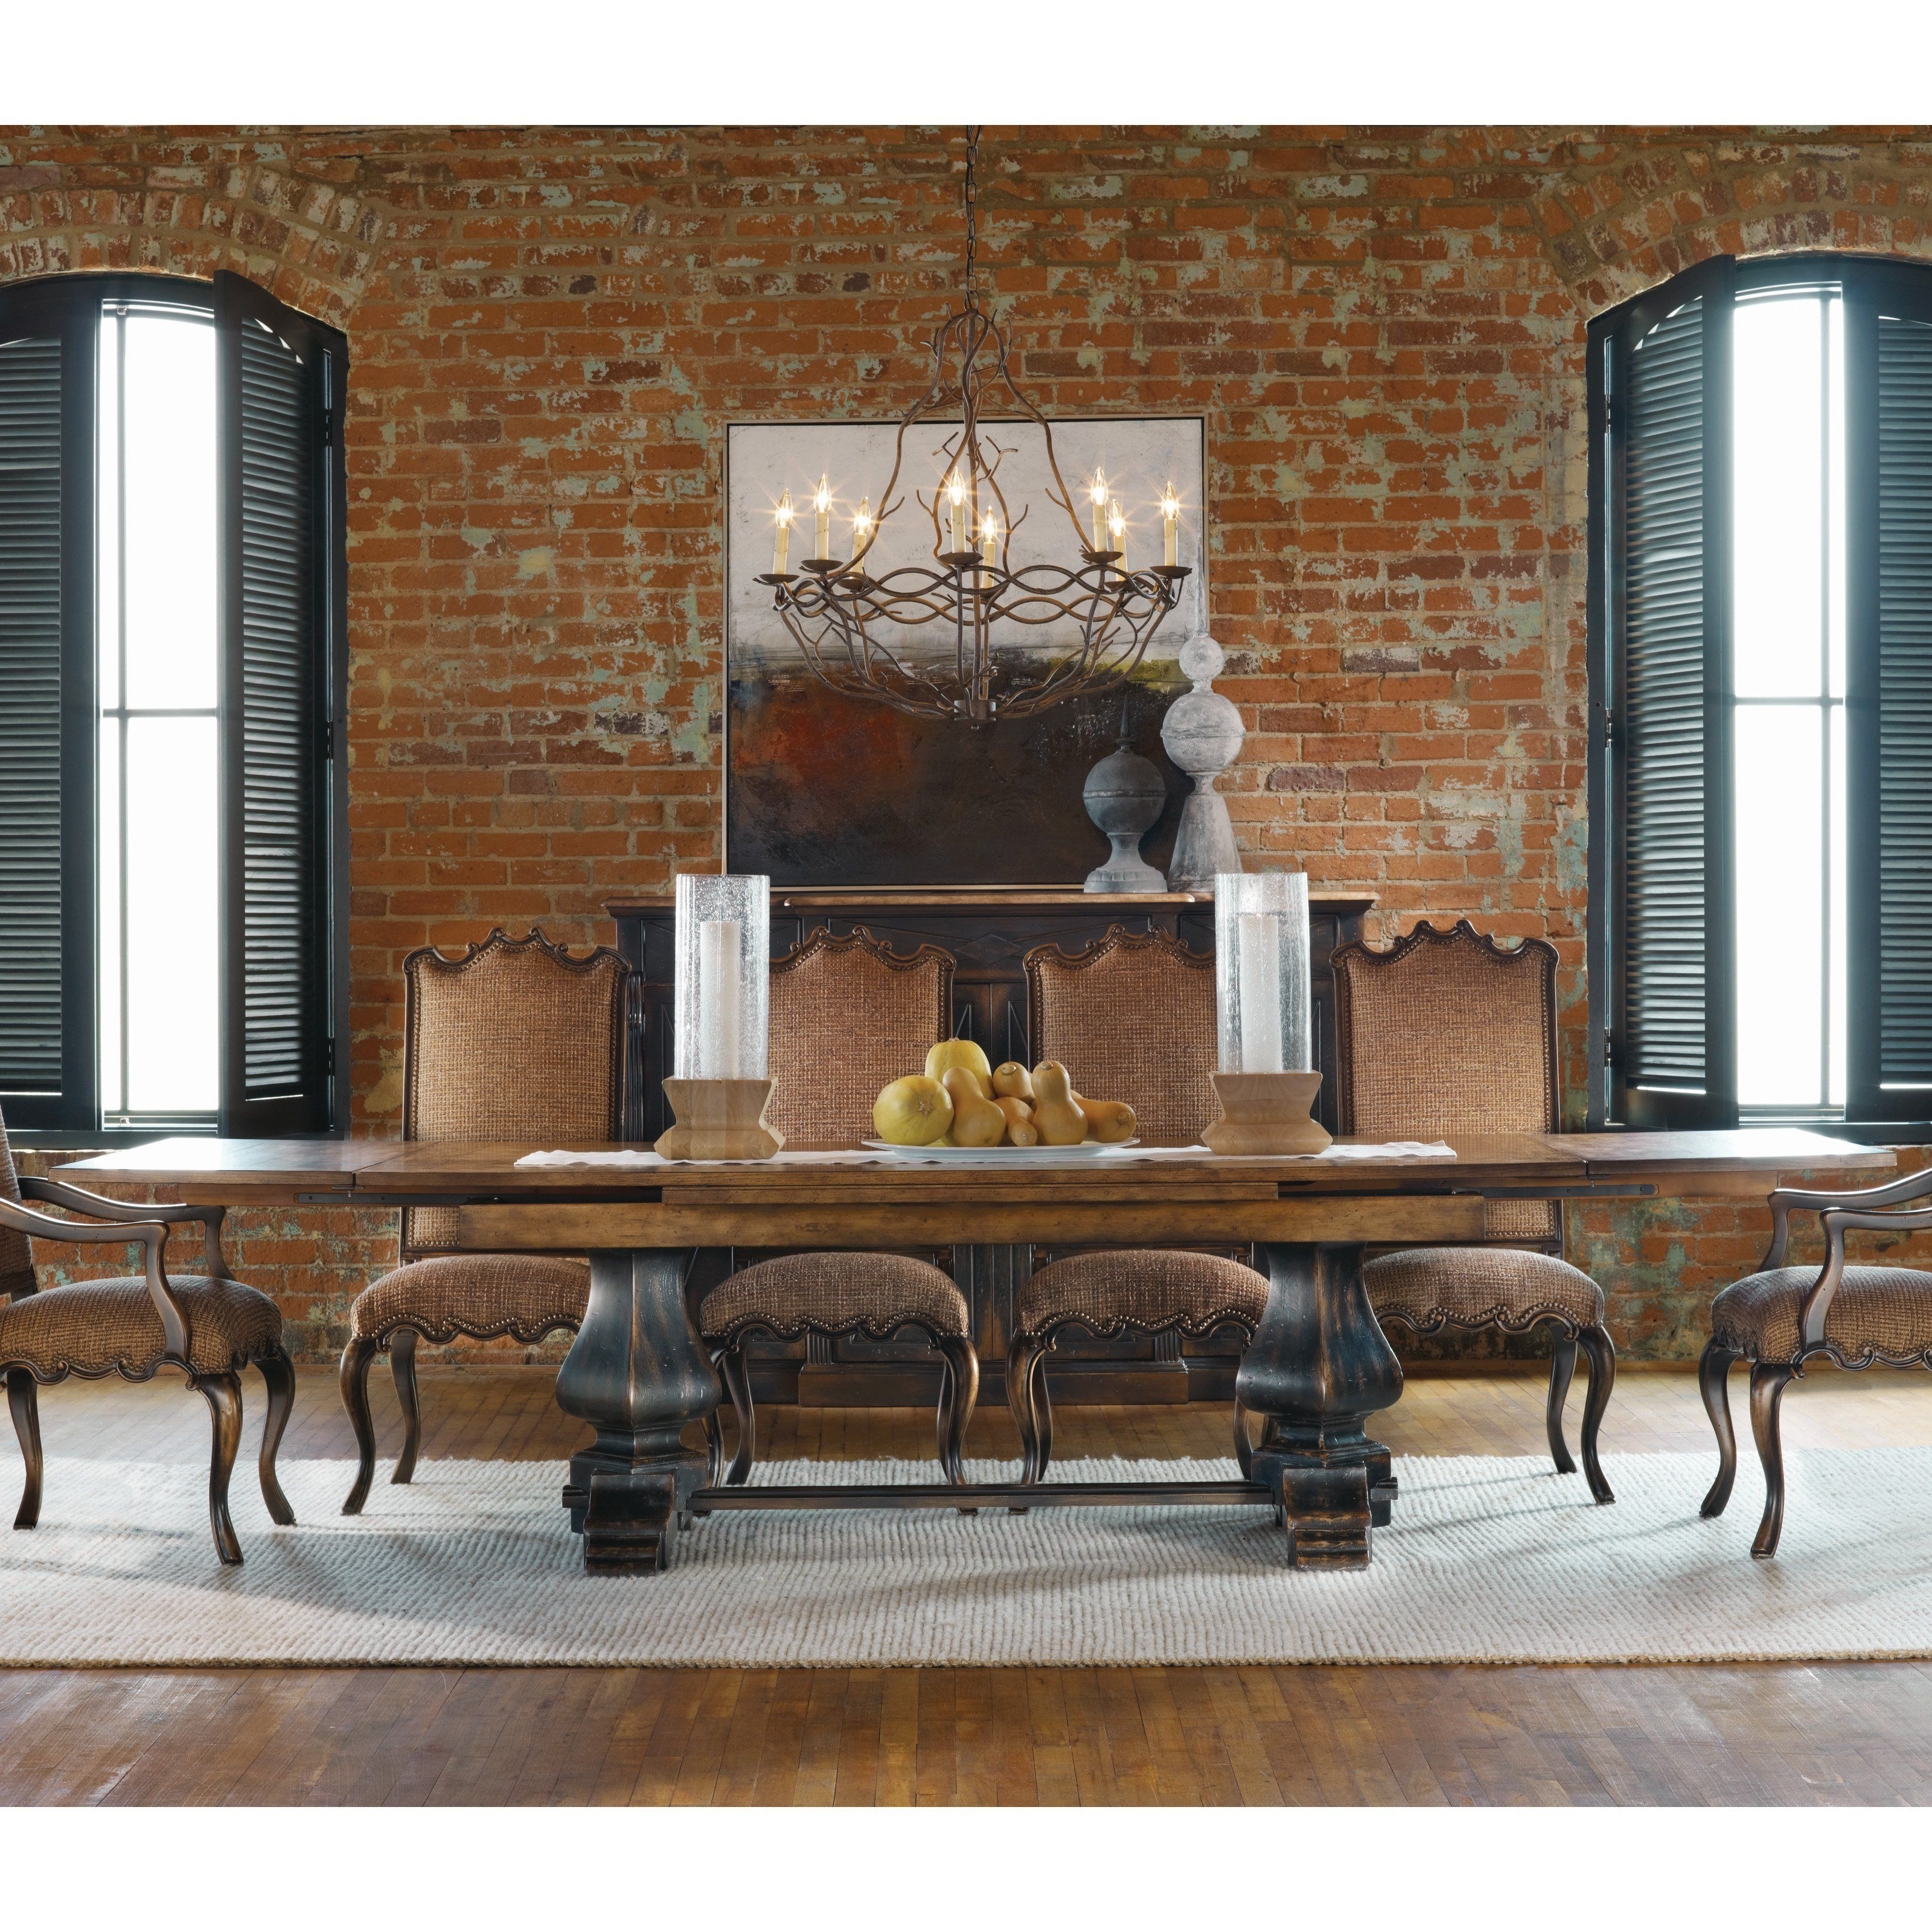 Great Hooker Furniture Sanctuary Refectory Trestle Dining Table   Ebony U0026 Drift